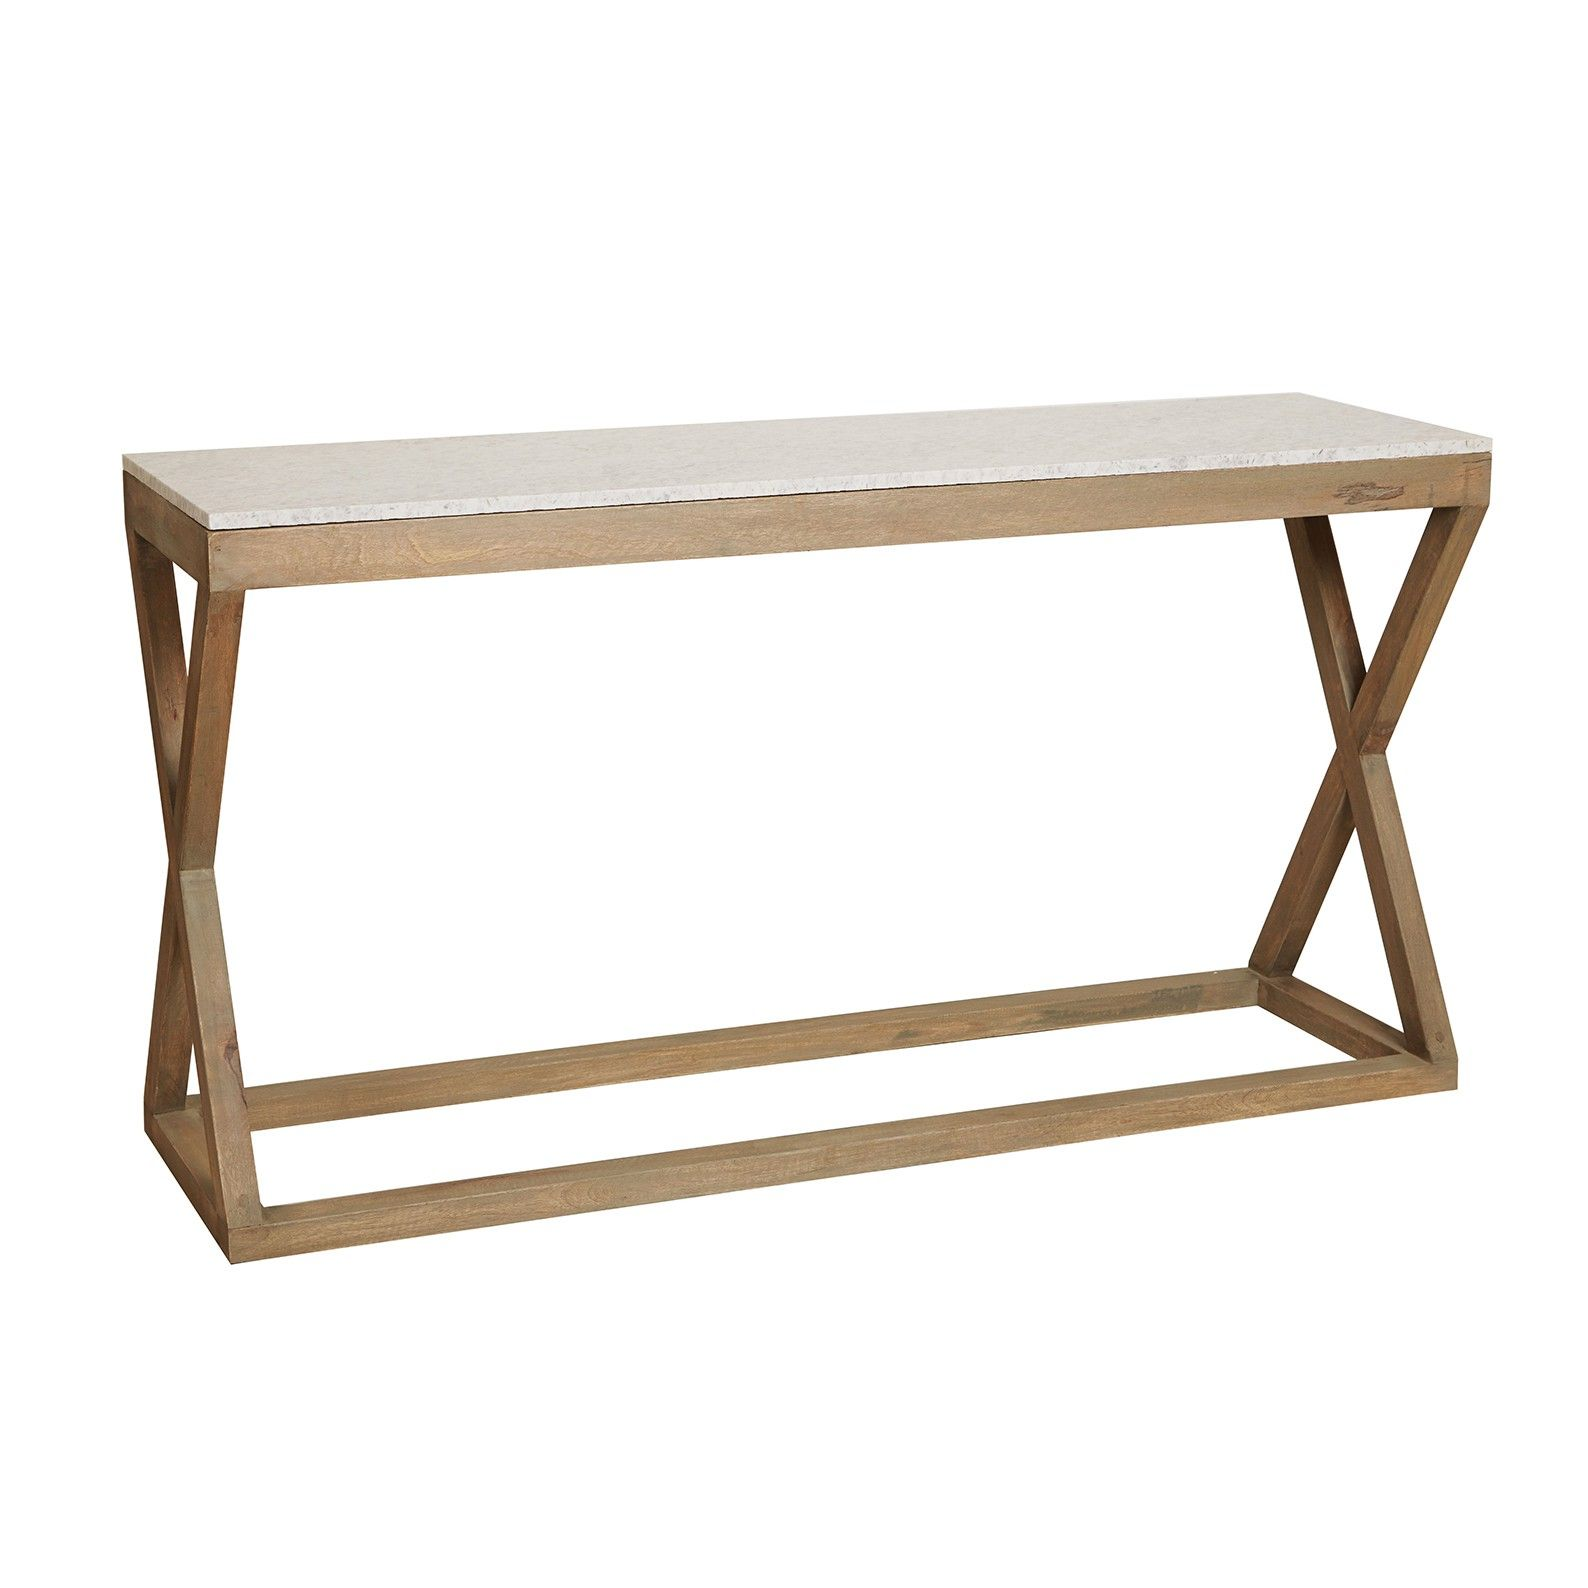 High Quality Maine Marble Top Console Table   150x45x80   Cu0026S